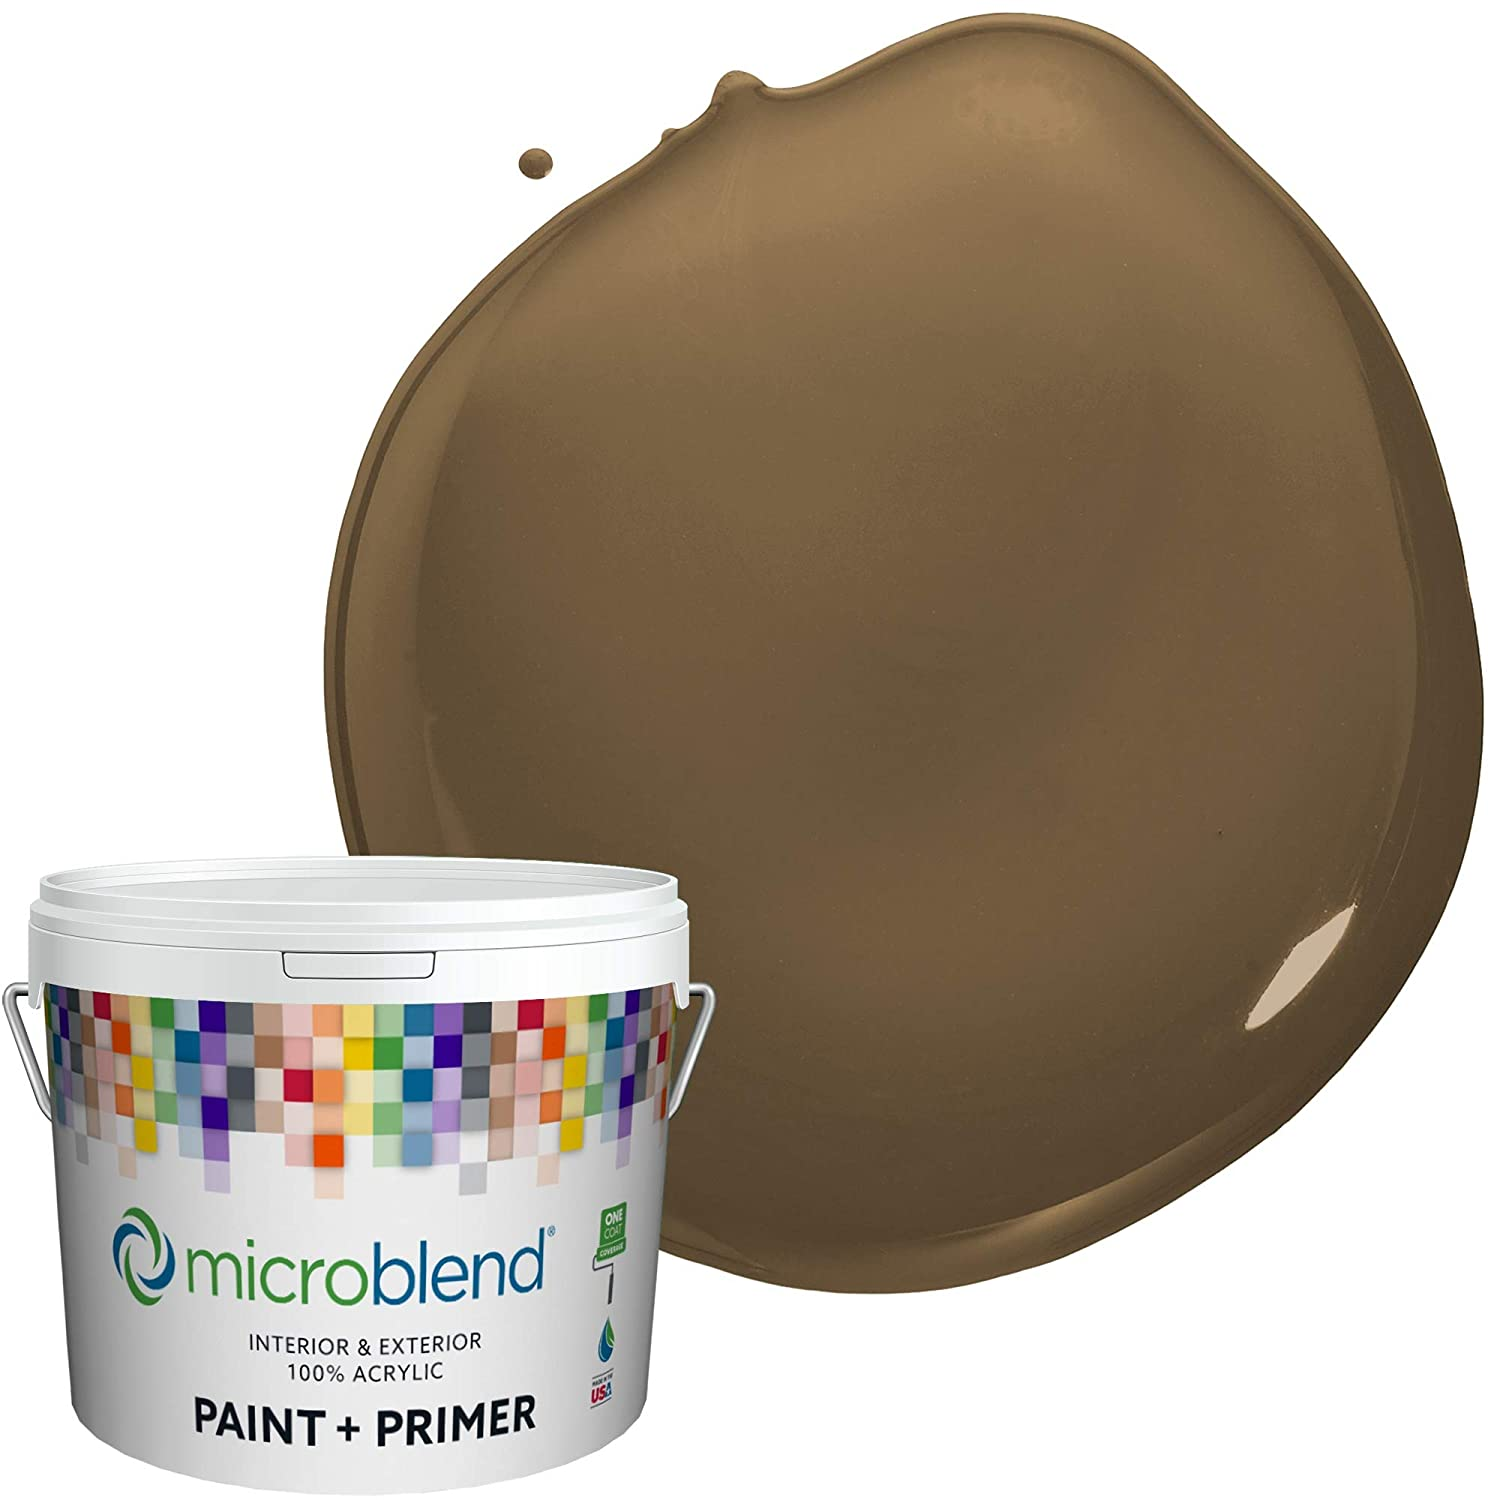 Microblend Interior Paint and Primer - Brown/Harvest King, Flat Sheen, 2-Gallon, Premium Quality, One Coat Hide, Low VOC, Washable, Microblend Browns Family